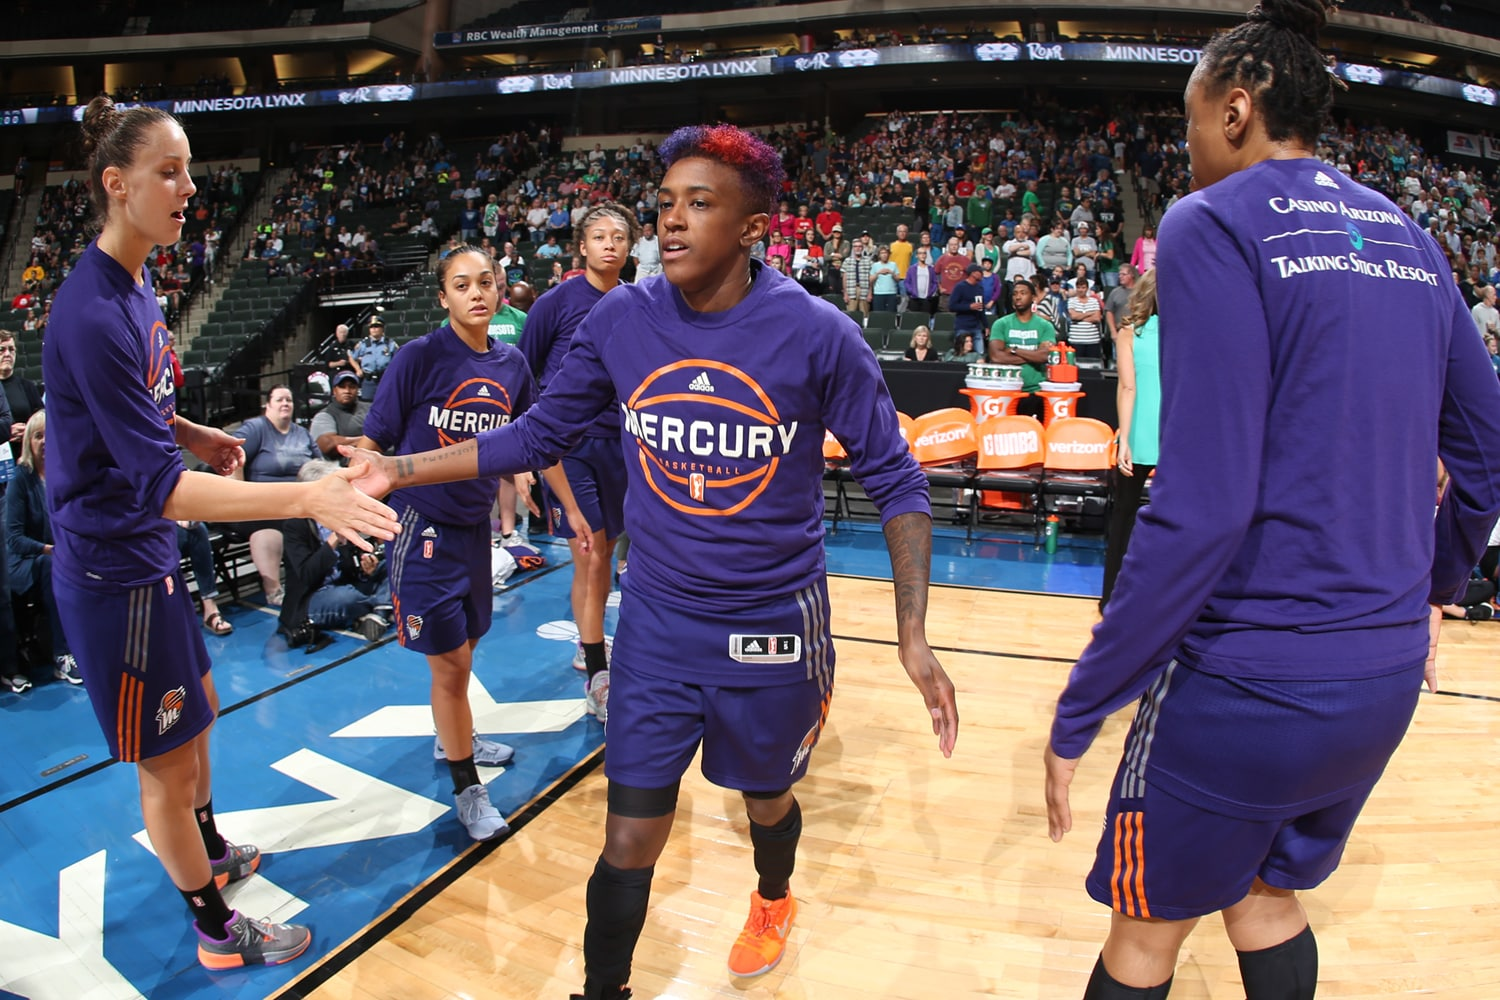 Danielle Robinson introduced for Phoenix Mercury v Minnesota Lynx